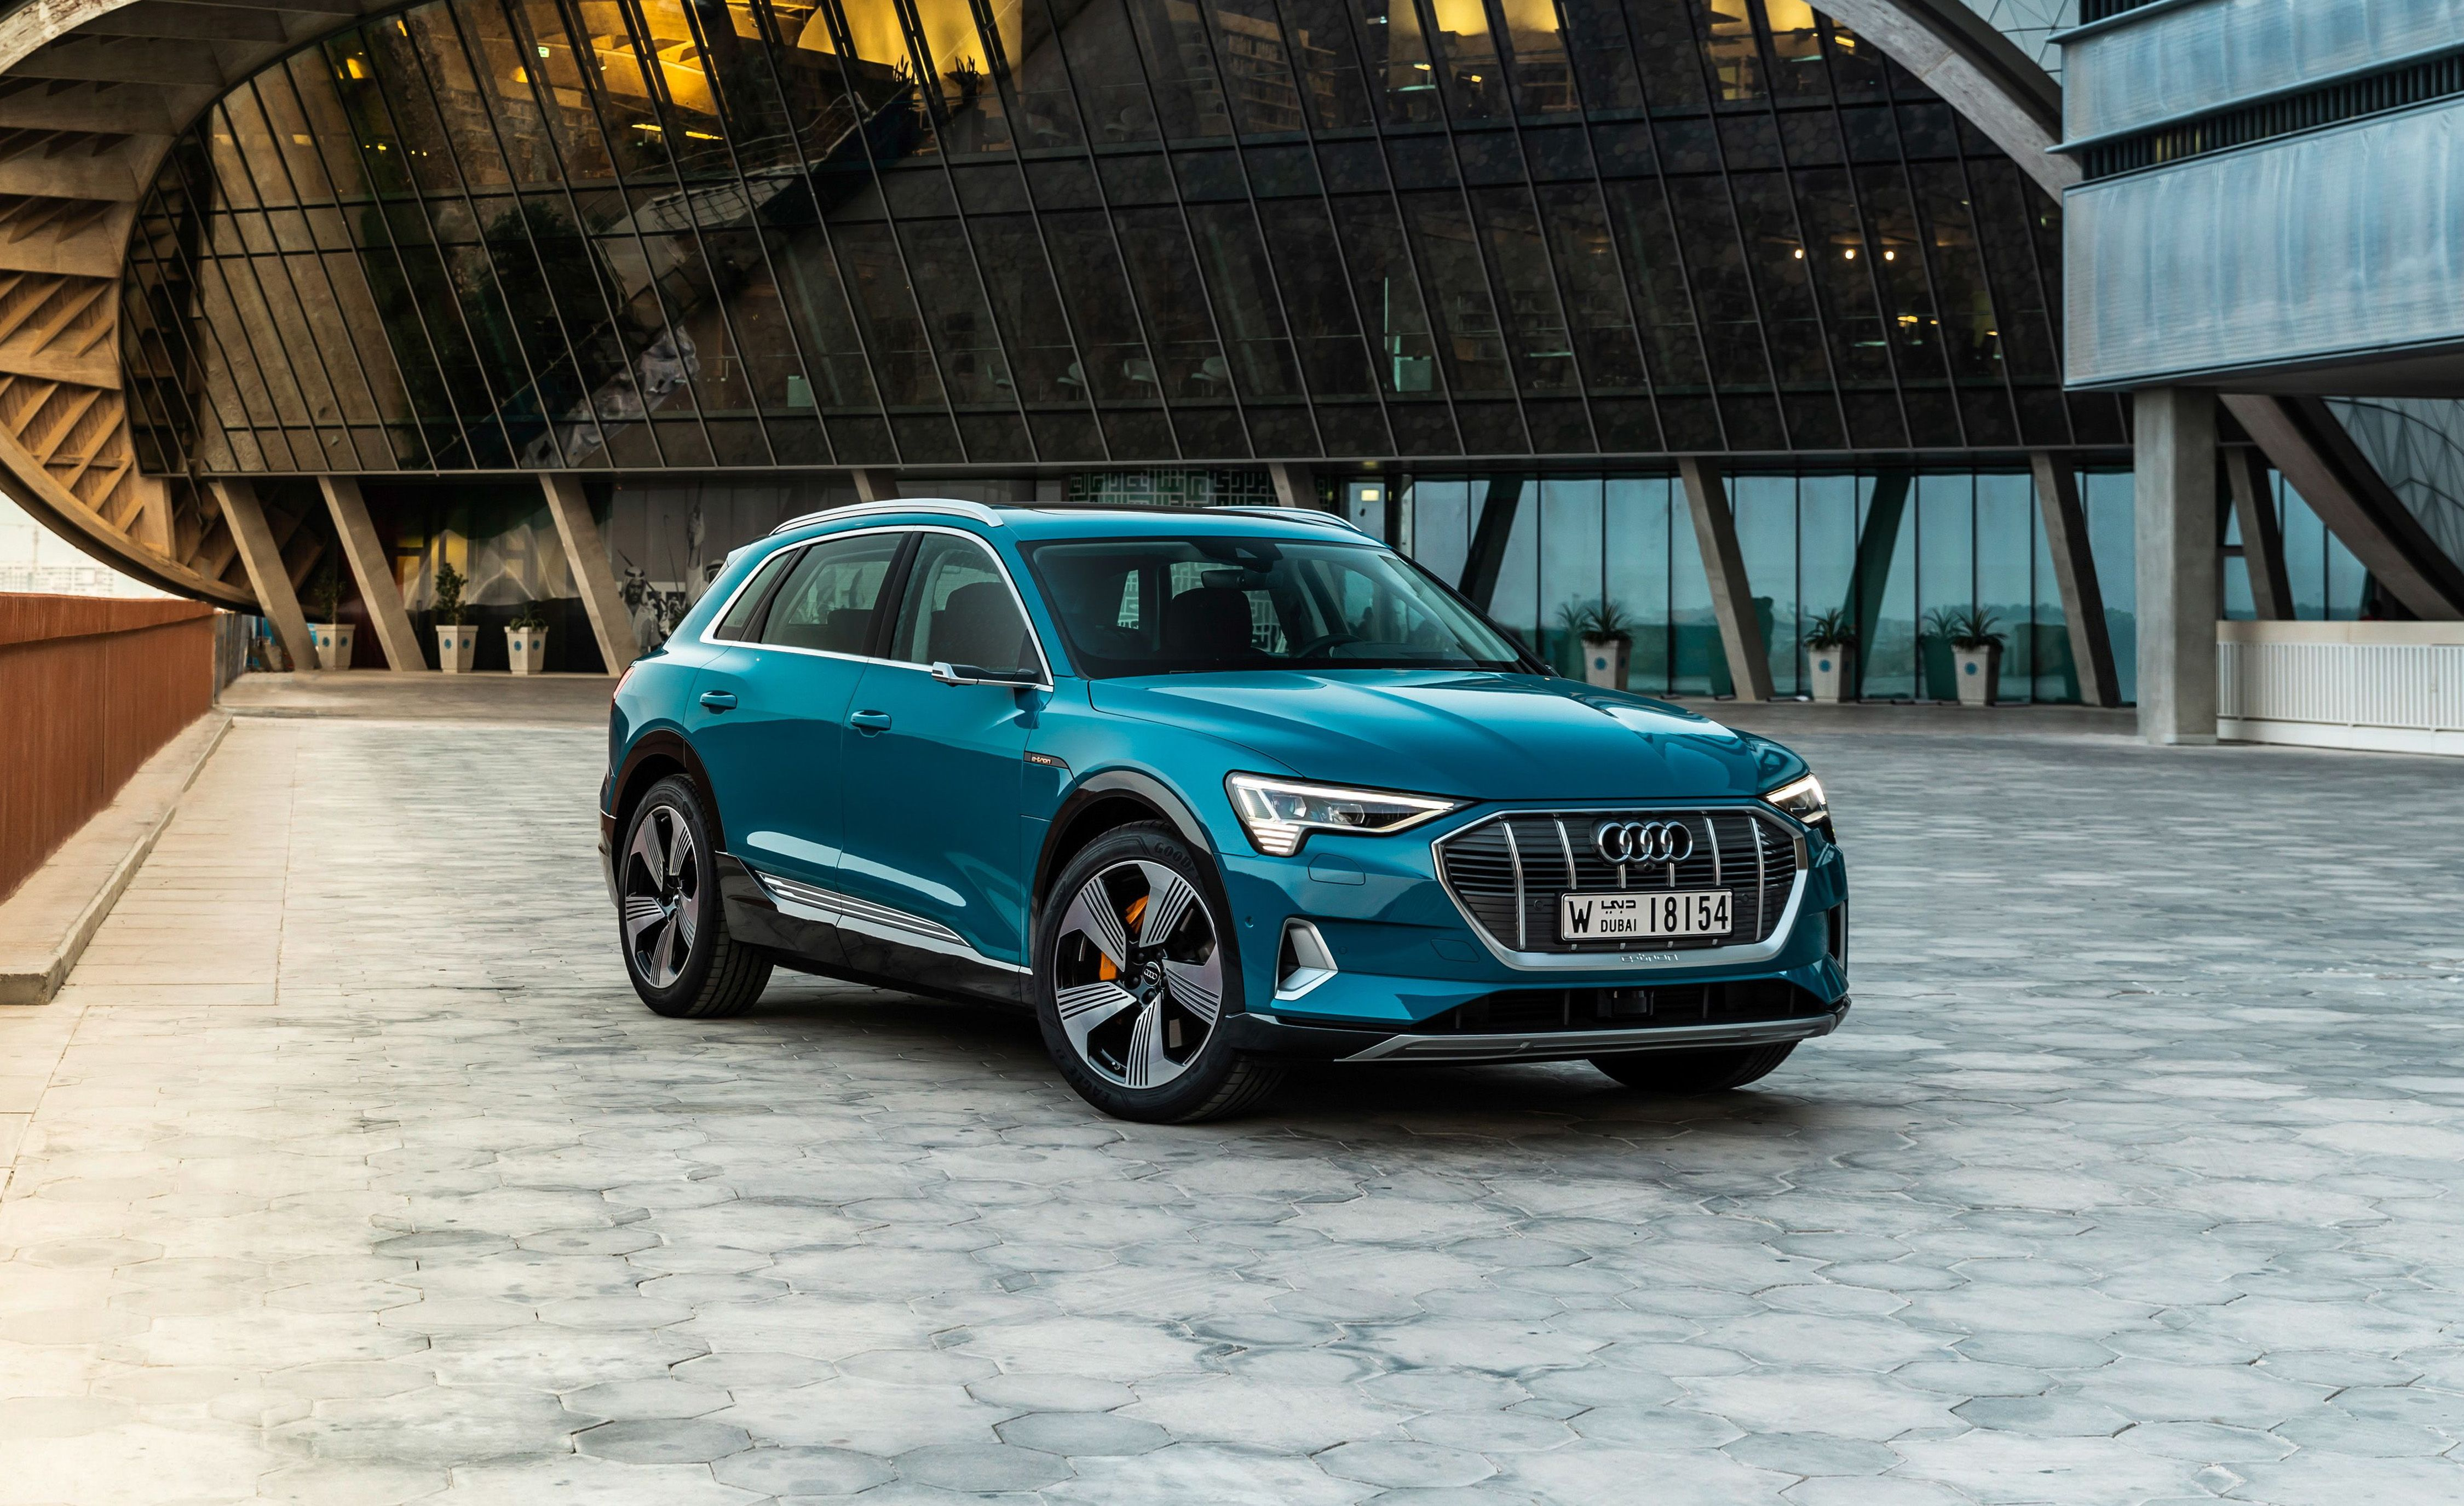 The 2019 Audi e-tron – Audi's First Electric SUV